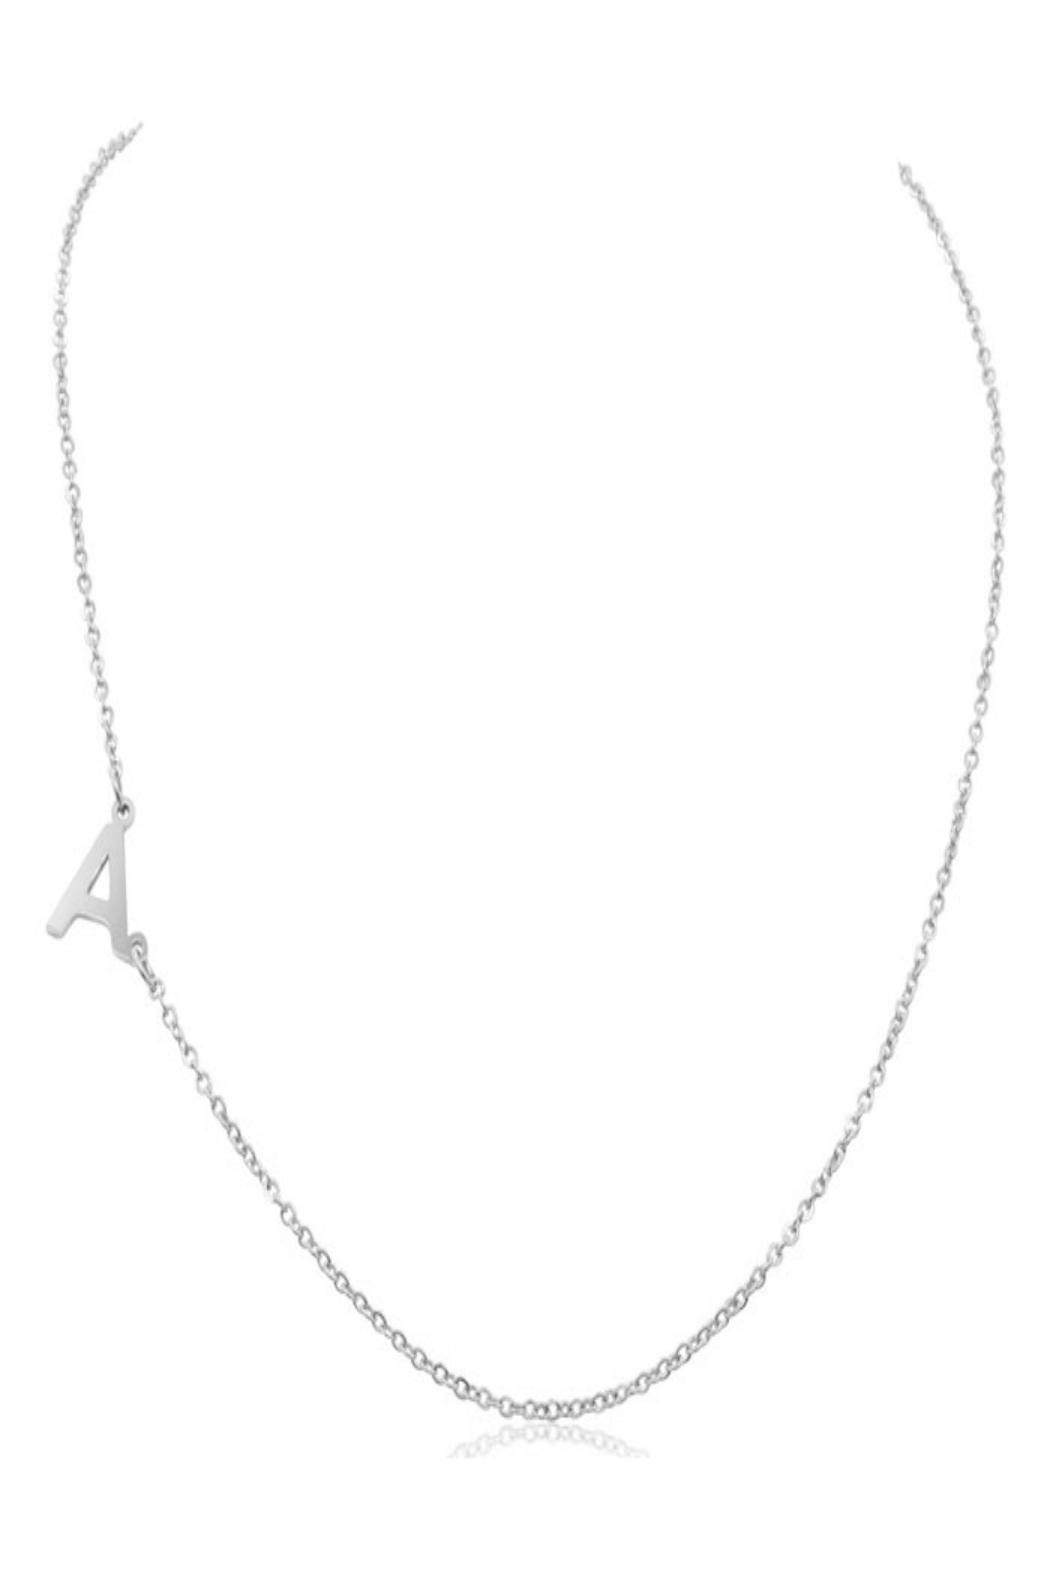 6th Borough Boutique Silver Initial Necklace - Main Image